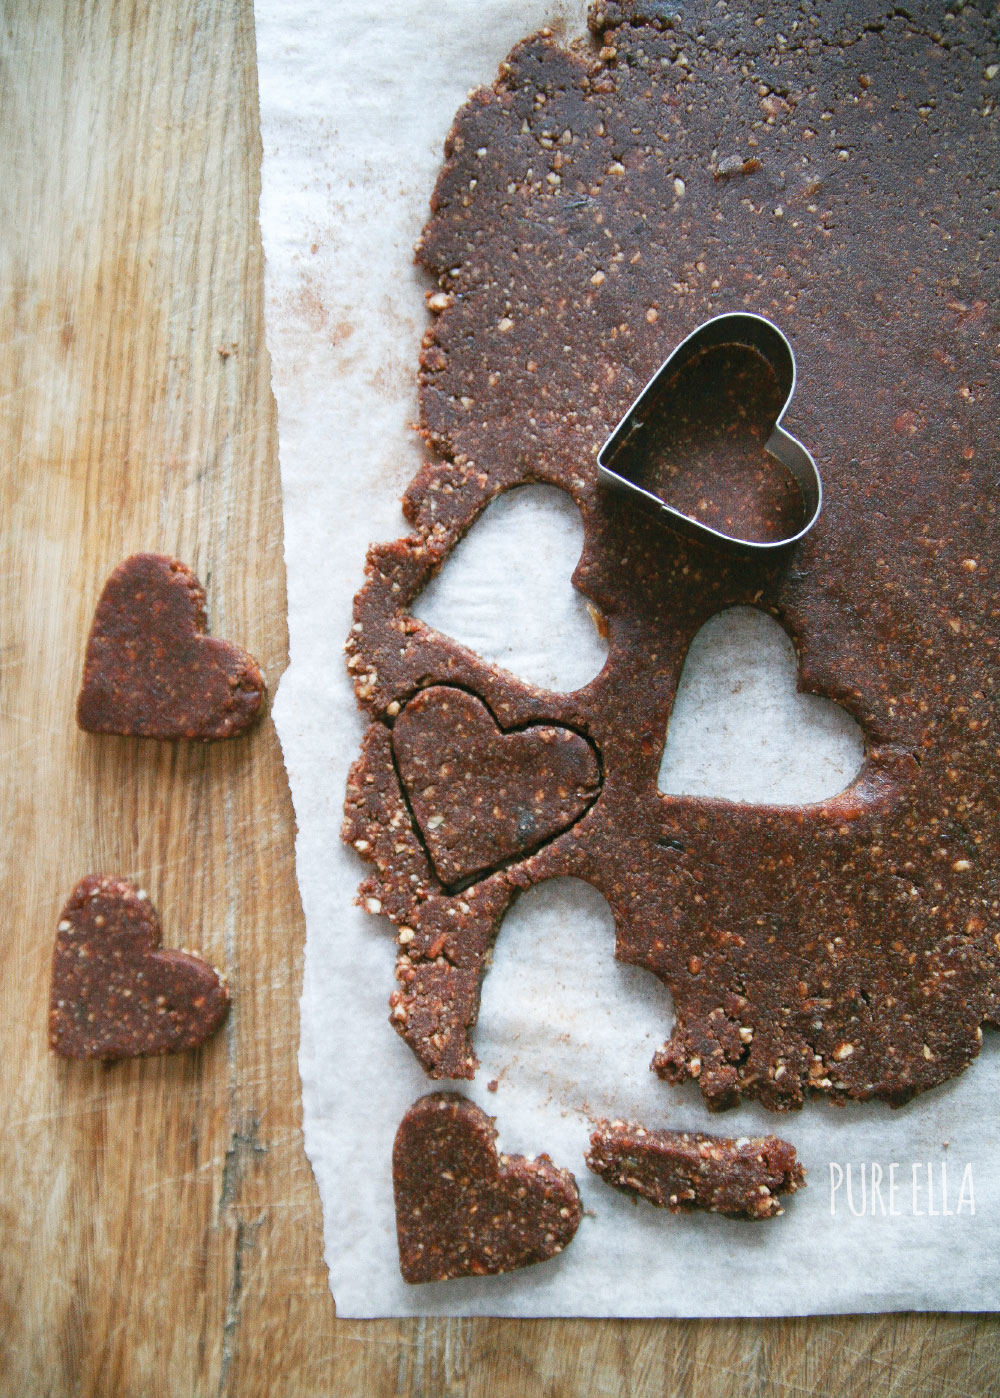 Pure-Ella-raw-hazelnut-chocolate-hearts7